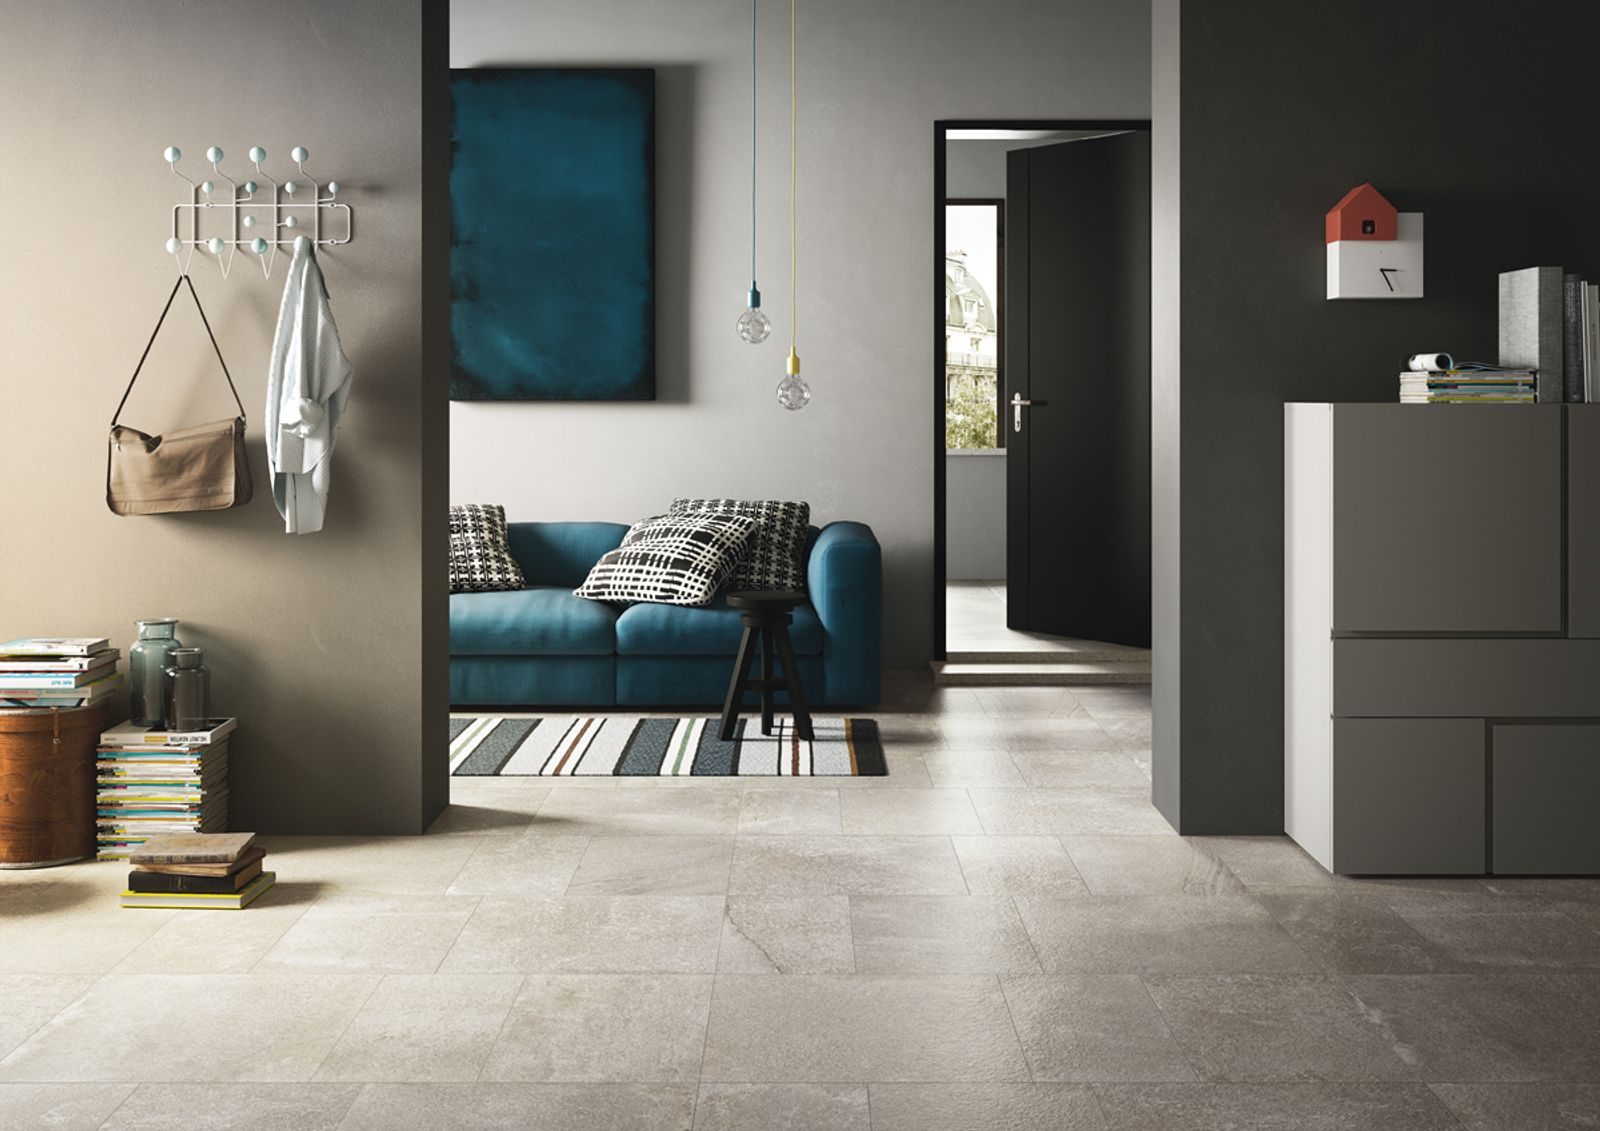 A new material inspired by the sedimentary dolomitic rock from the Limestone family, found in the Appalachian Mountains in North America. A stone with a rugged appeal that combines quartzite and porphyry and recalls the same subtle shades that  appear in nature, from grey to brown to black.  - AM BRIXSTONE 2 - Imola Ceramica